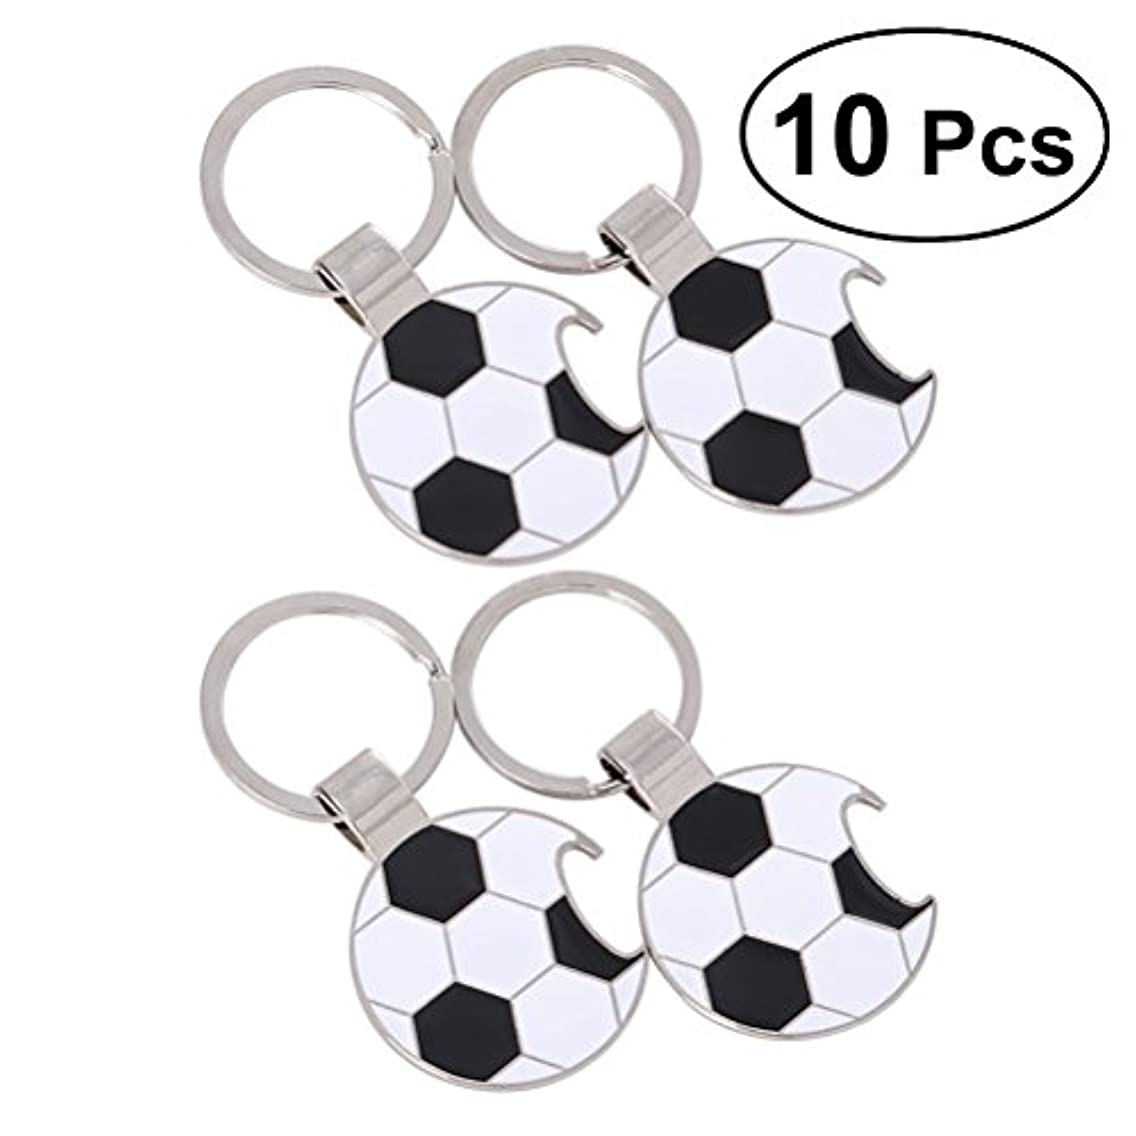 Toyvian 10pcs Soccer Bottle Opener Key Chain Ring Pocket Small Beverage Beer Opener Novelty for The World Cup